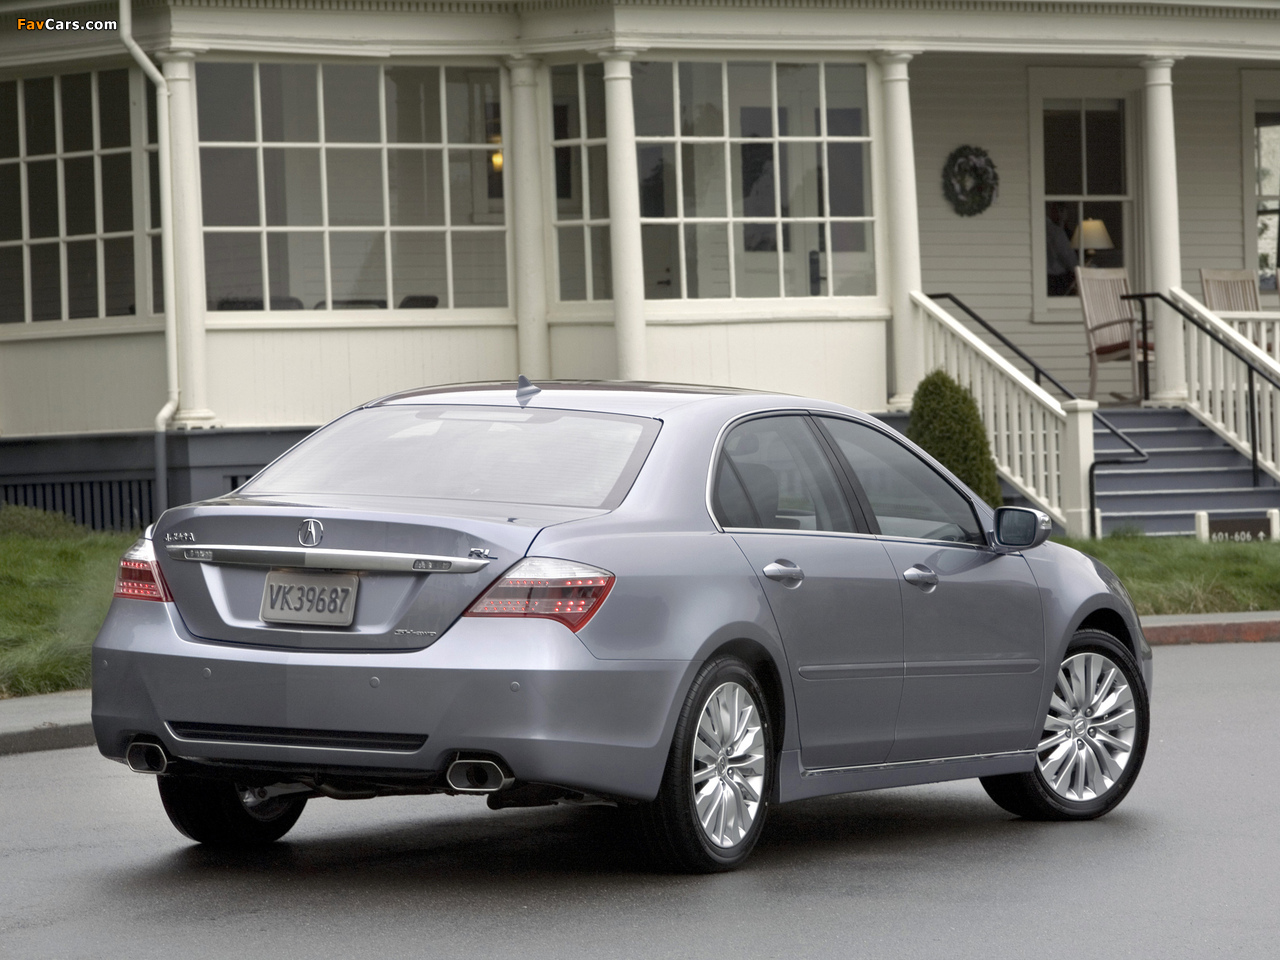 Acura RL (2010) wallpapers (1280 x 960)